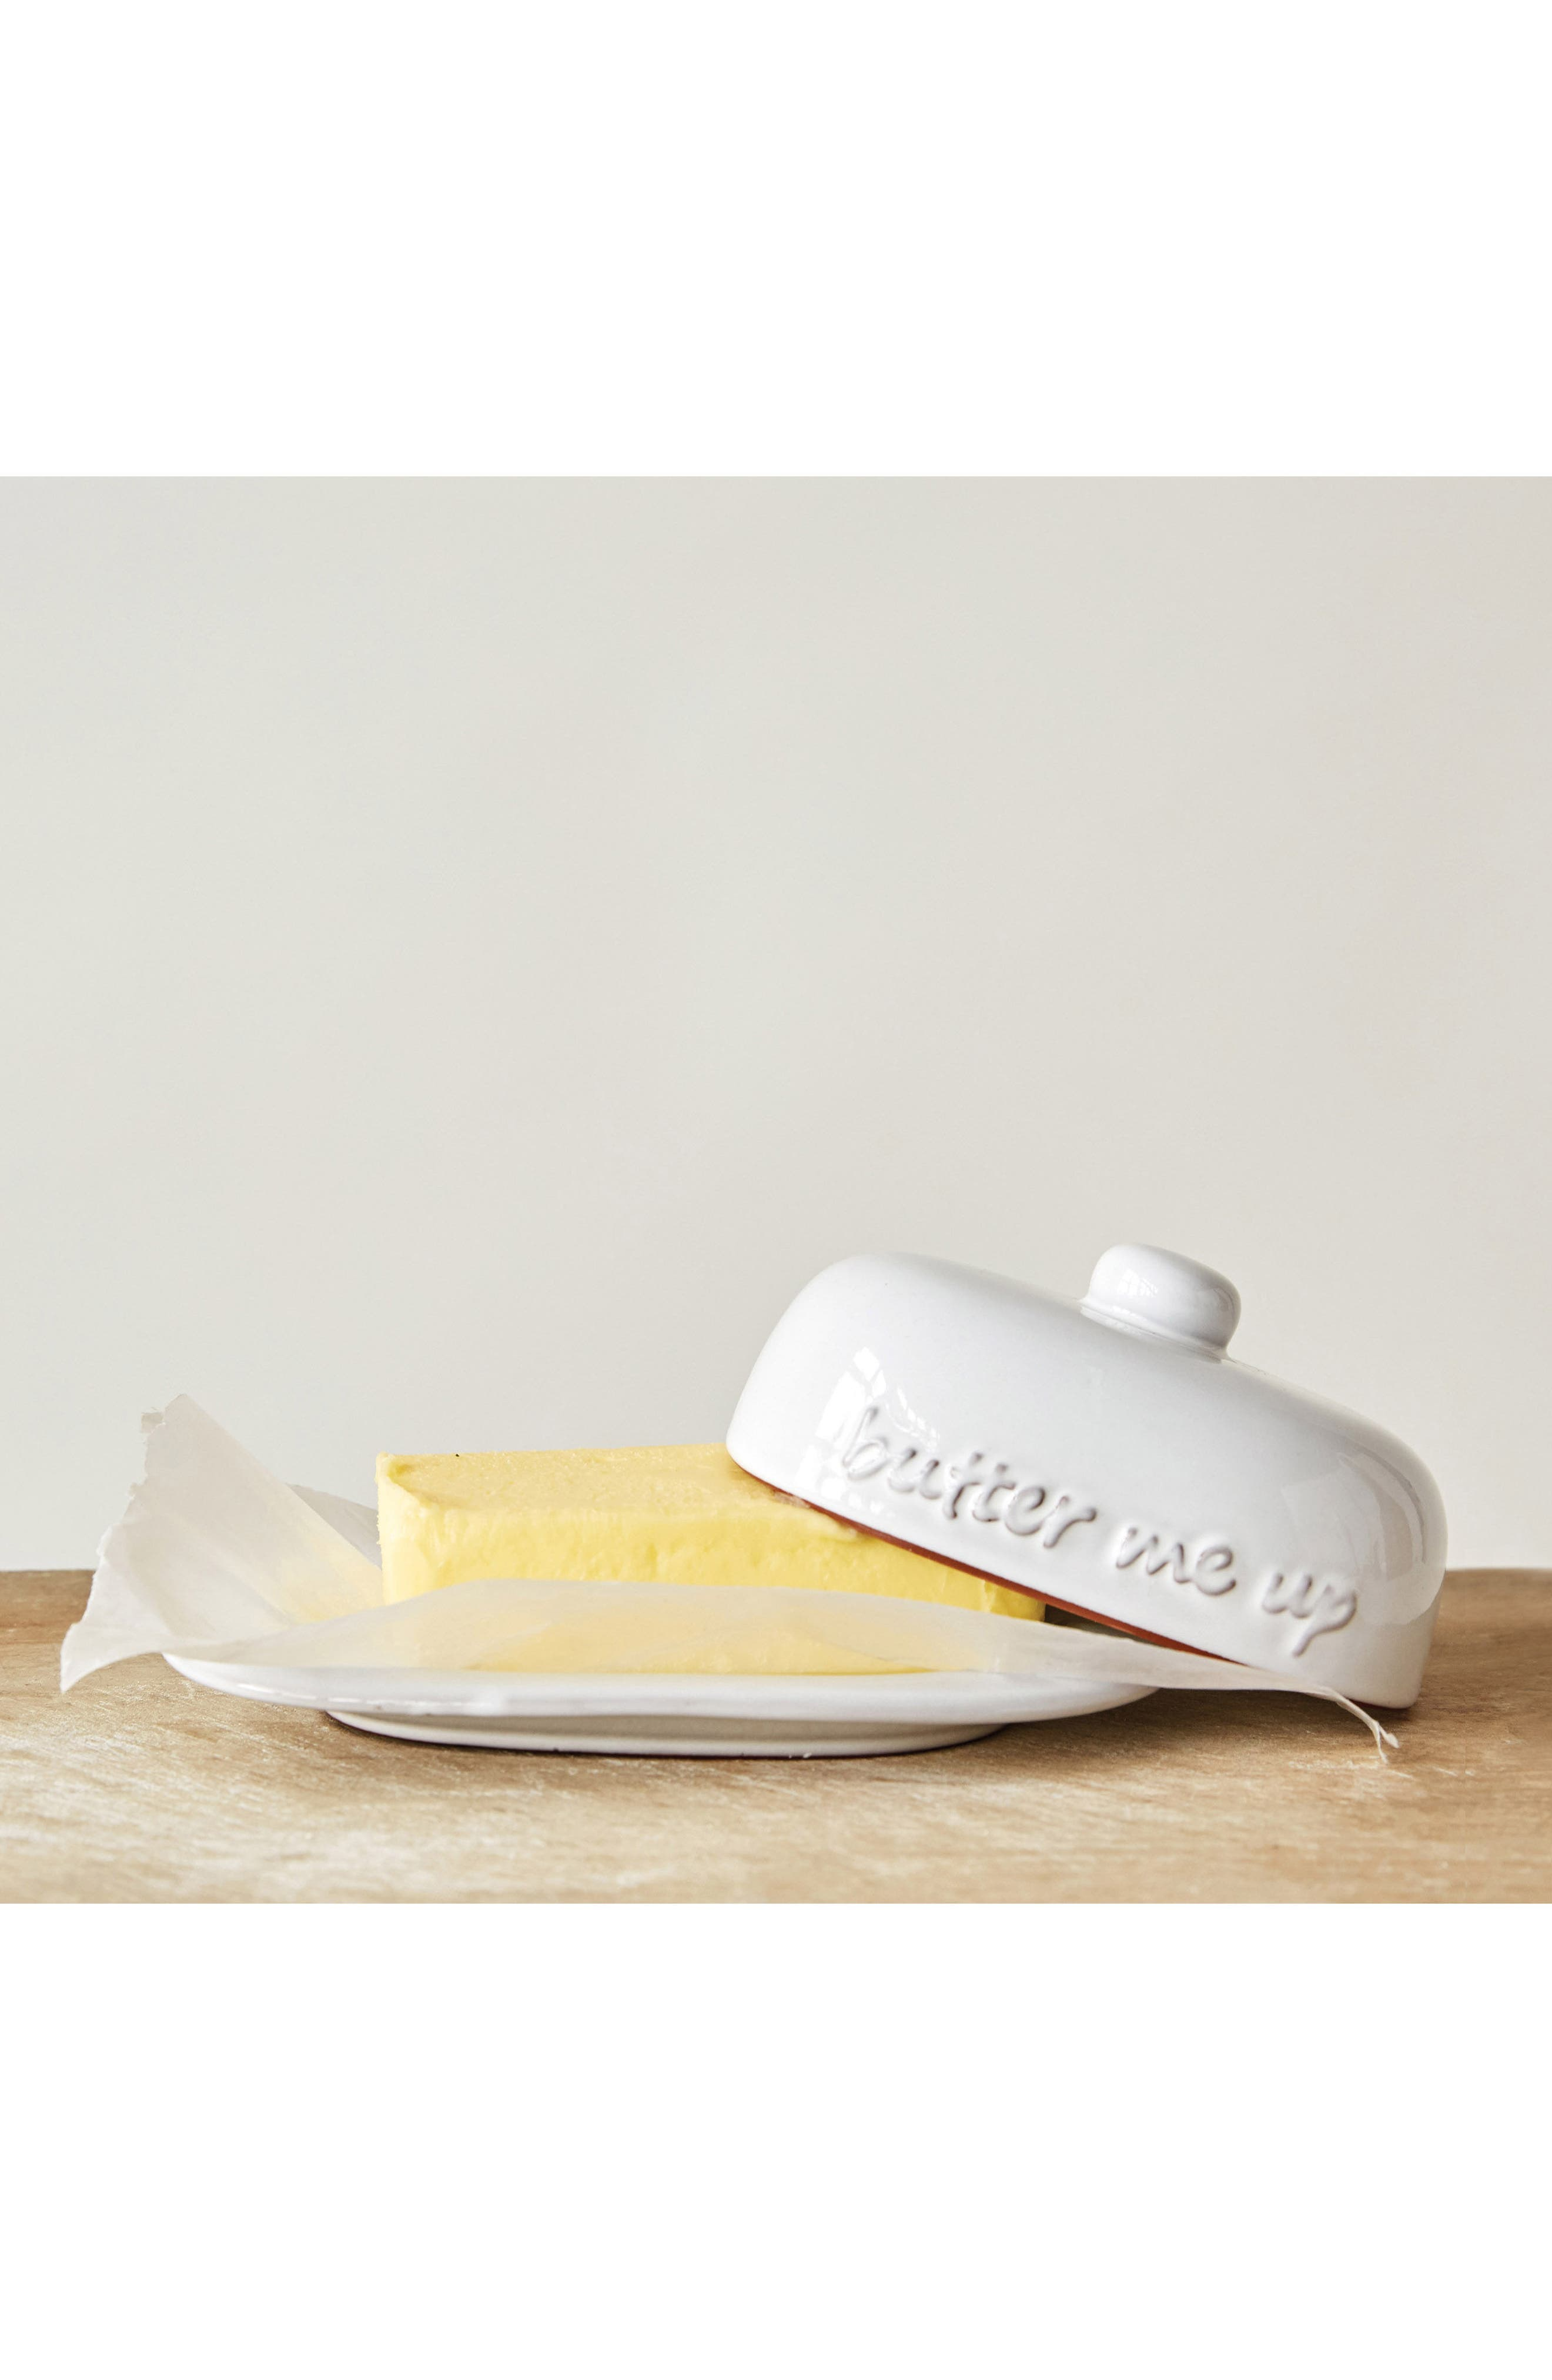 Butter Me Up Ceramic Butter Dish,                             Alternate thumbnail 2, color,                             White